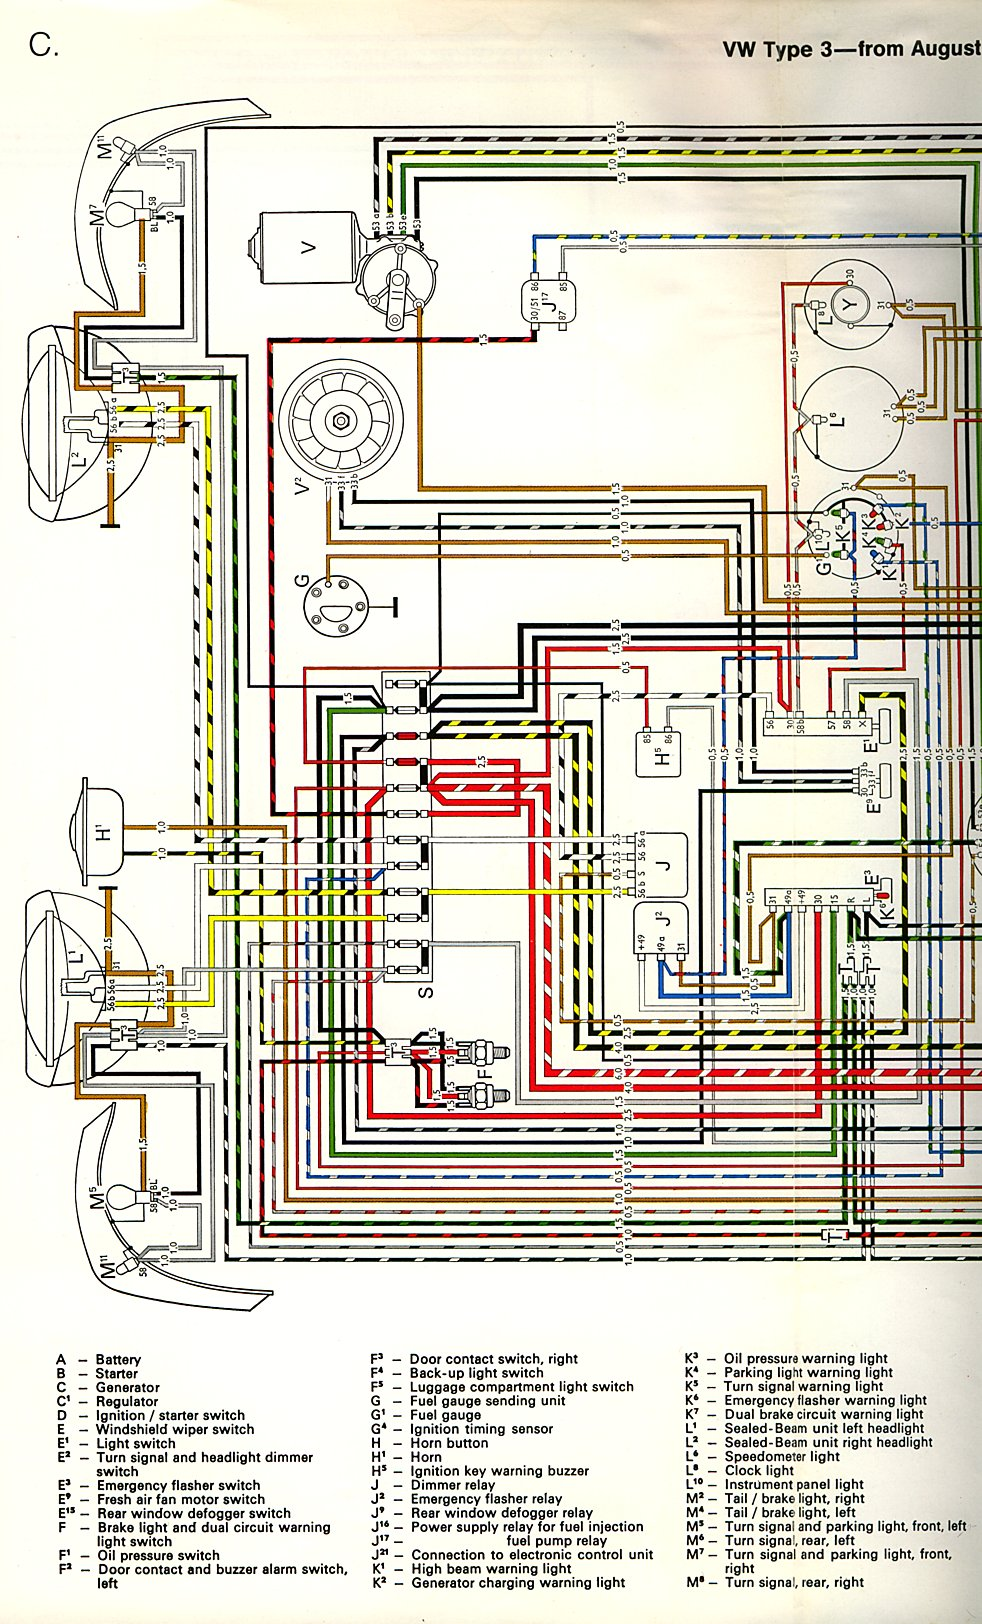 1970 Vw Turn Signal Wiring Diagram - Diagrams Catalogue A L Wiring Harness For Diy on